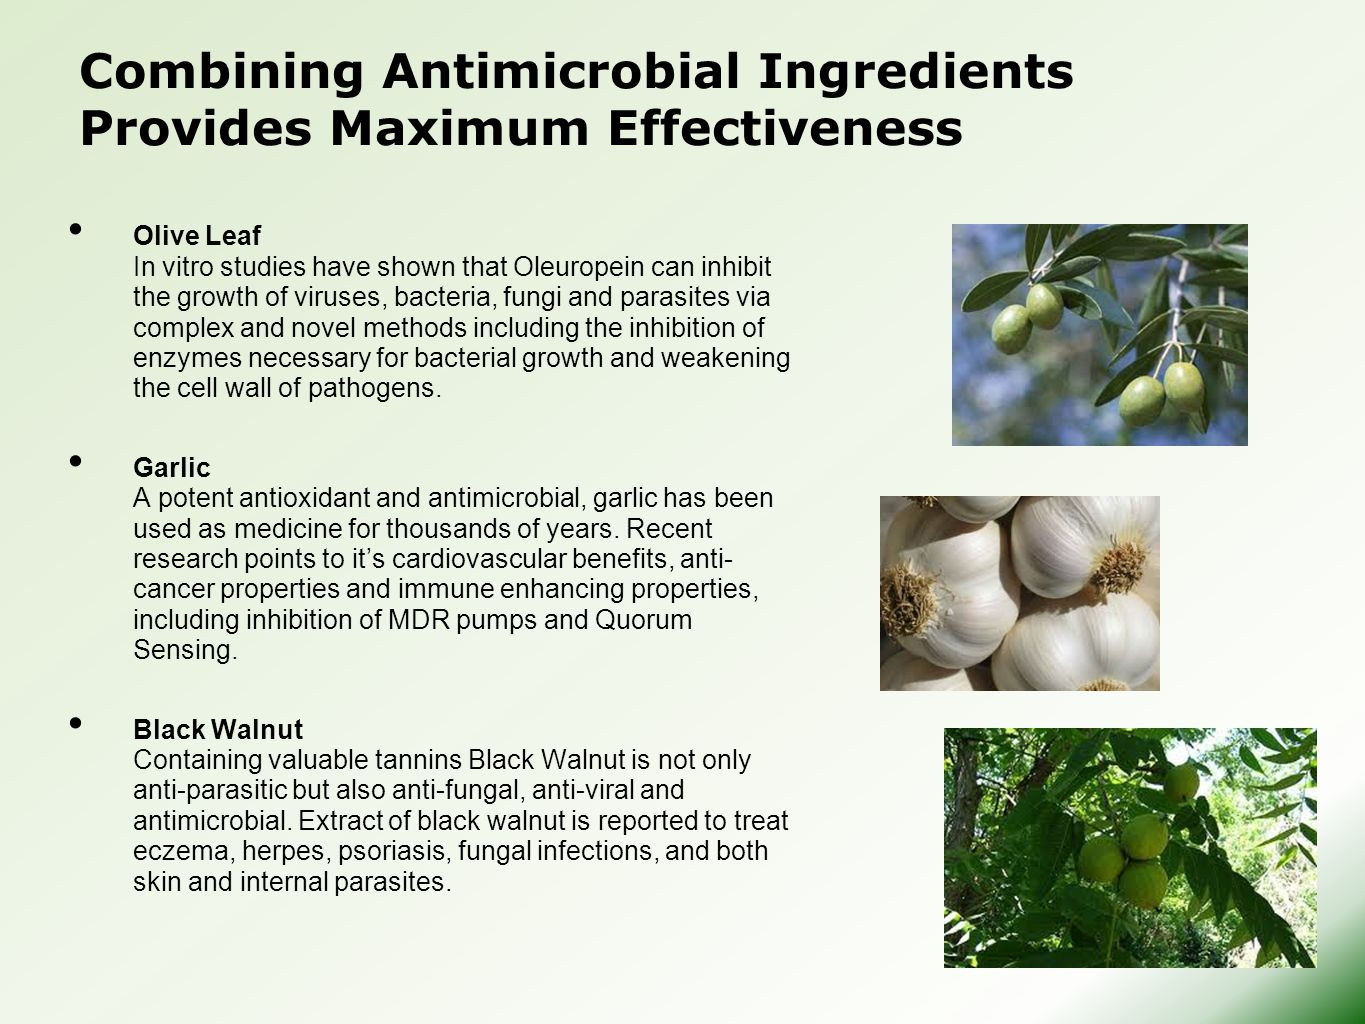 Combining Antimicrobial Ingredients Provides Maximum Effectiveness